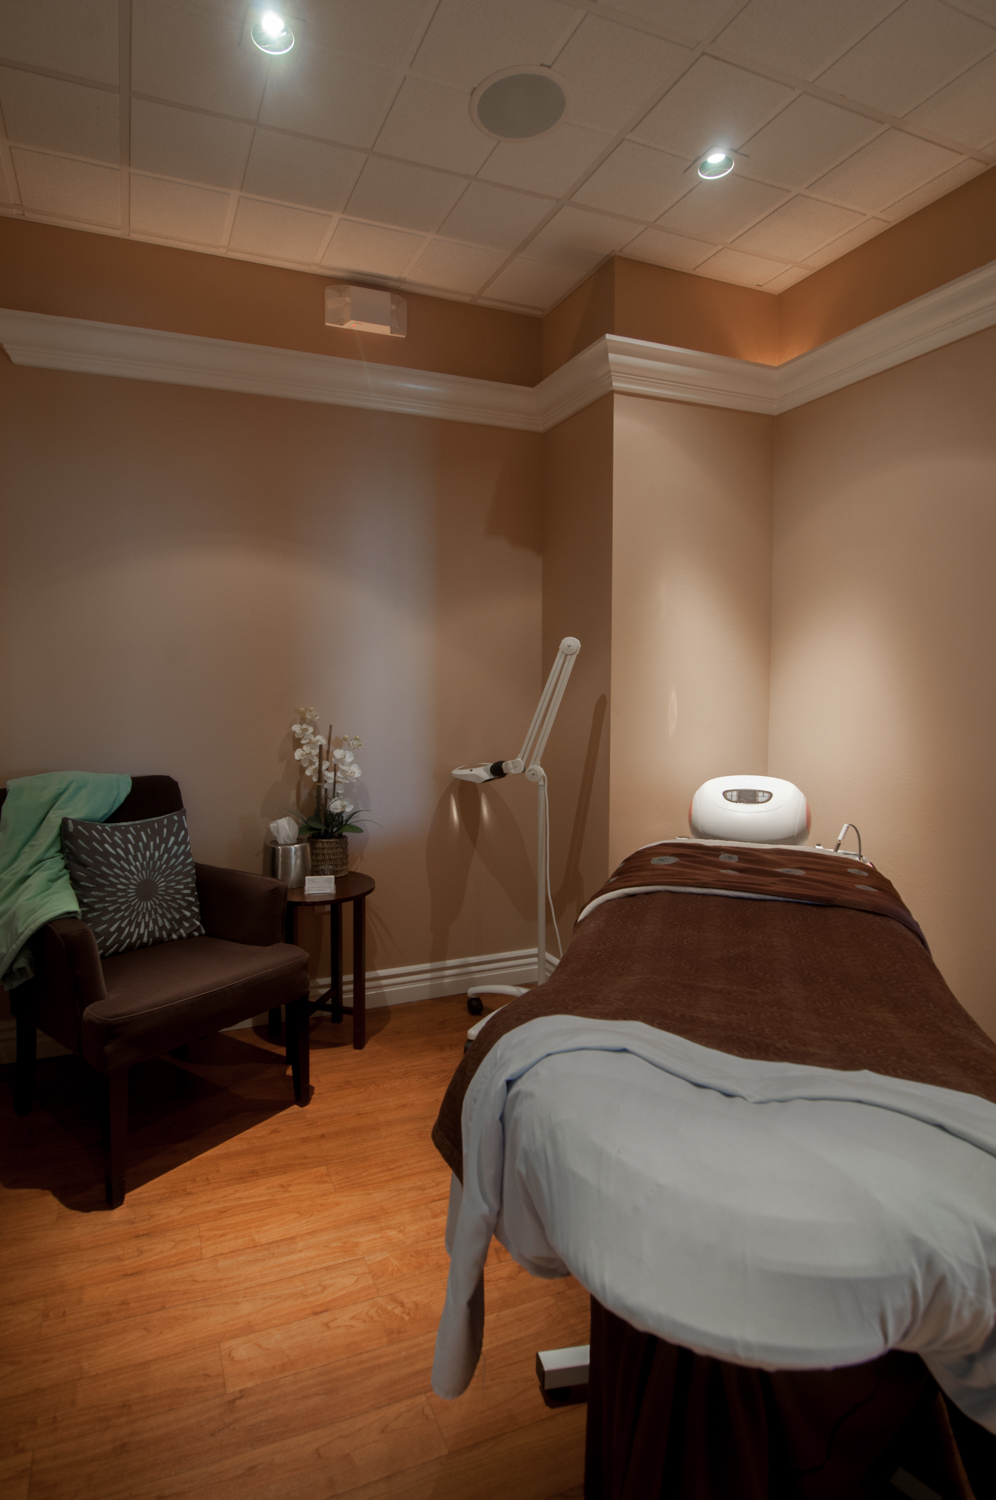 Massage Room Treatment Room Spago Day Spa Medispa Salon Punta Gorda Florida Michael Stampar D.O. DO